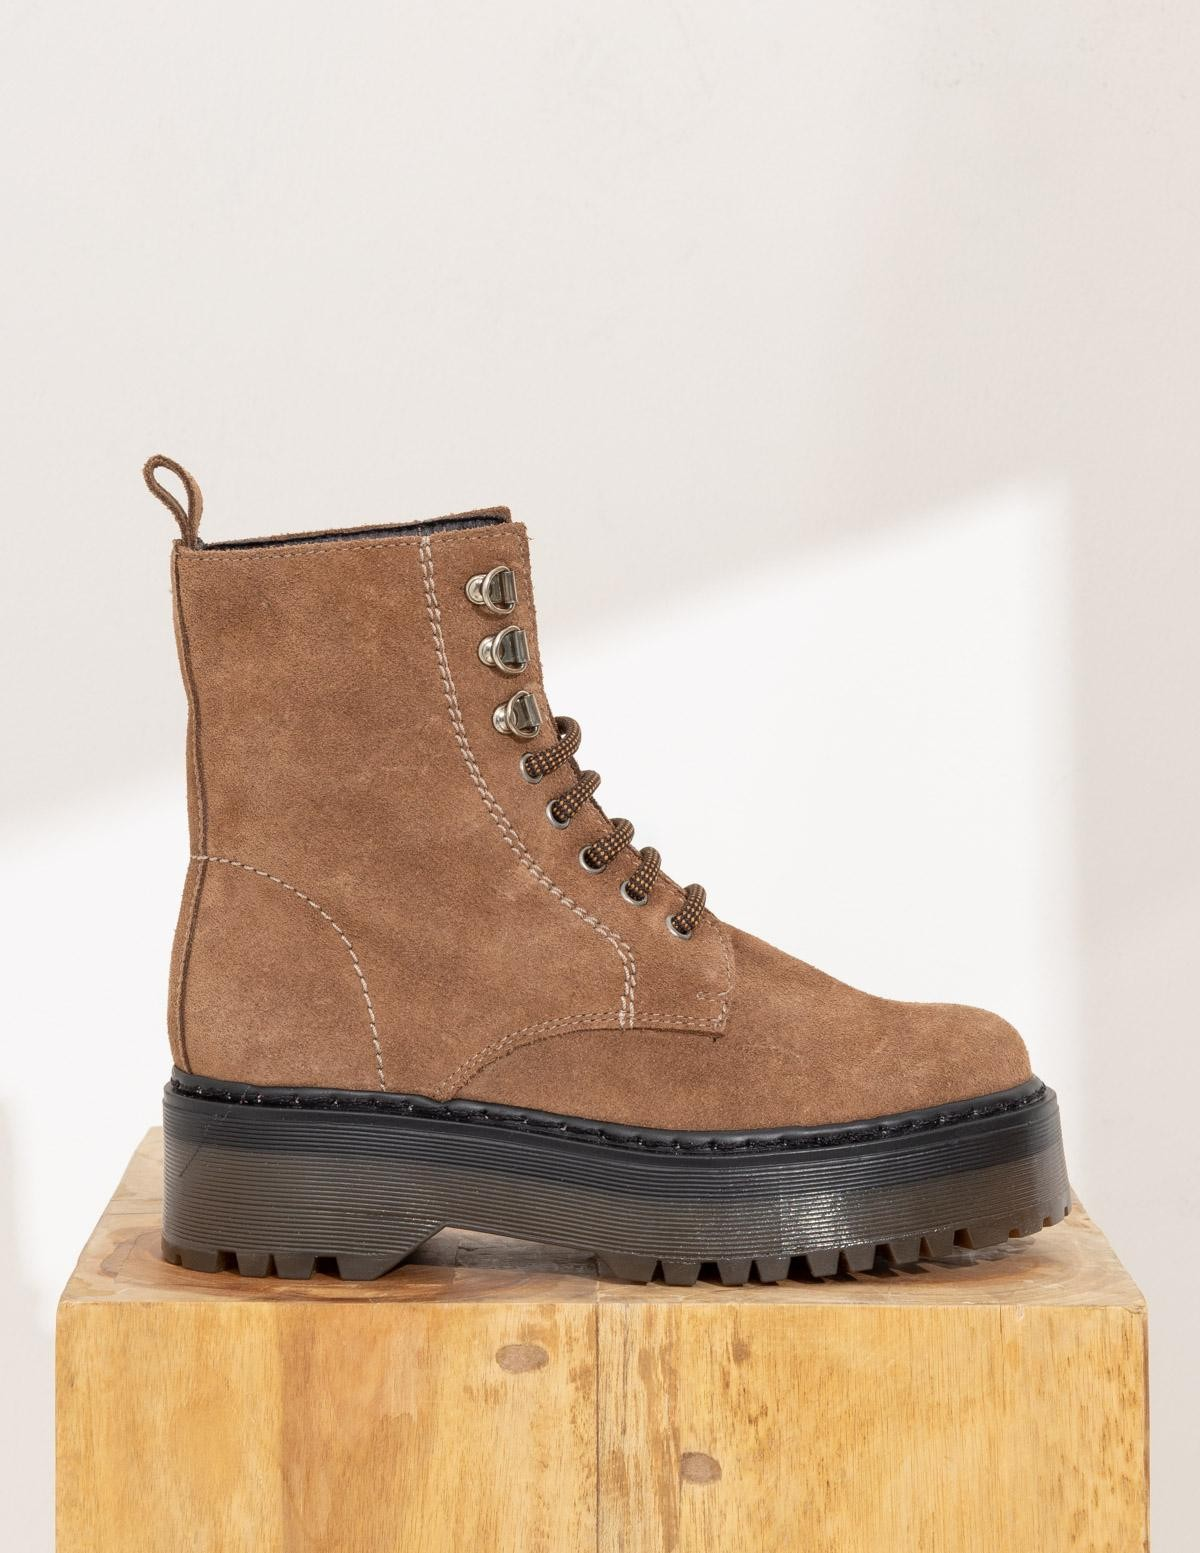 MOUNTAINEER STYLE BOOTY - Item1